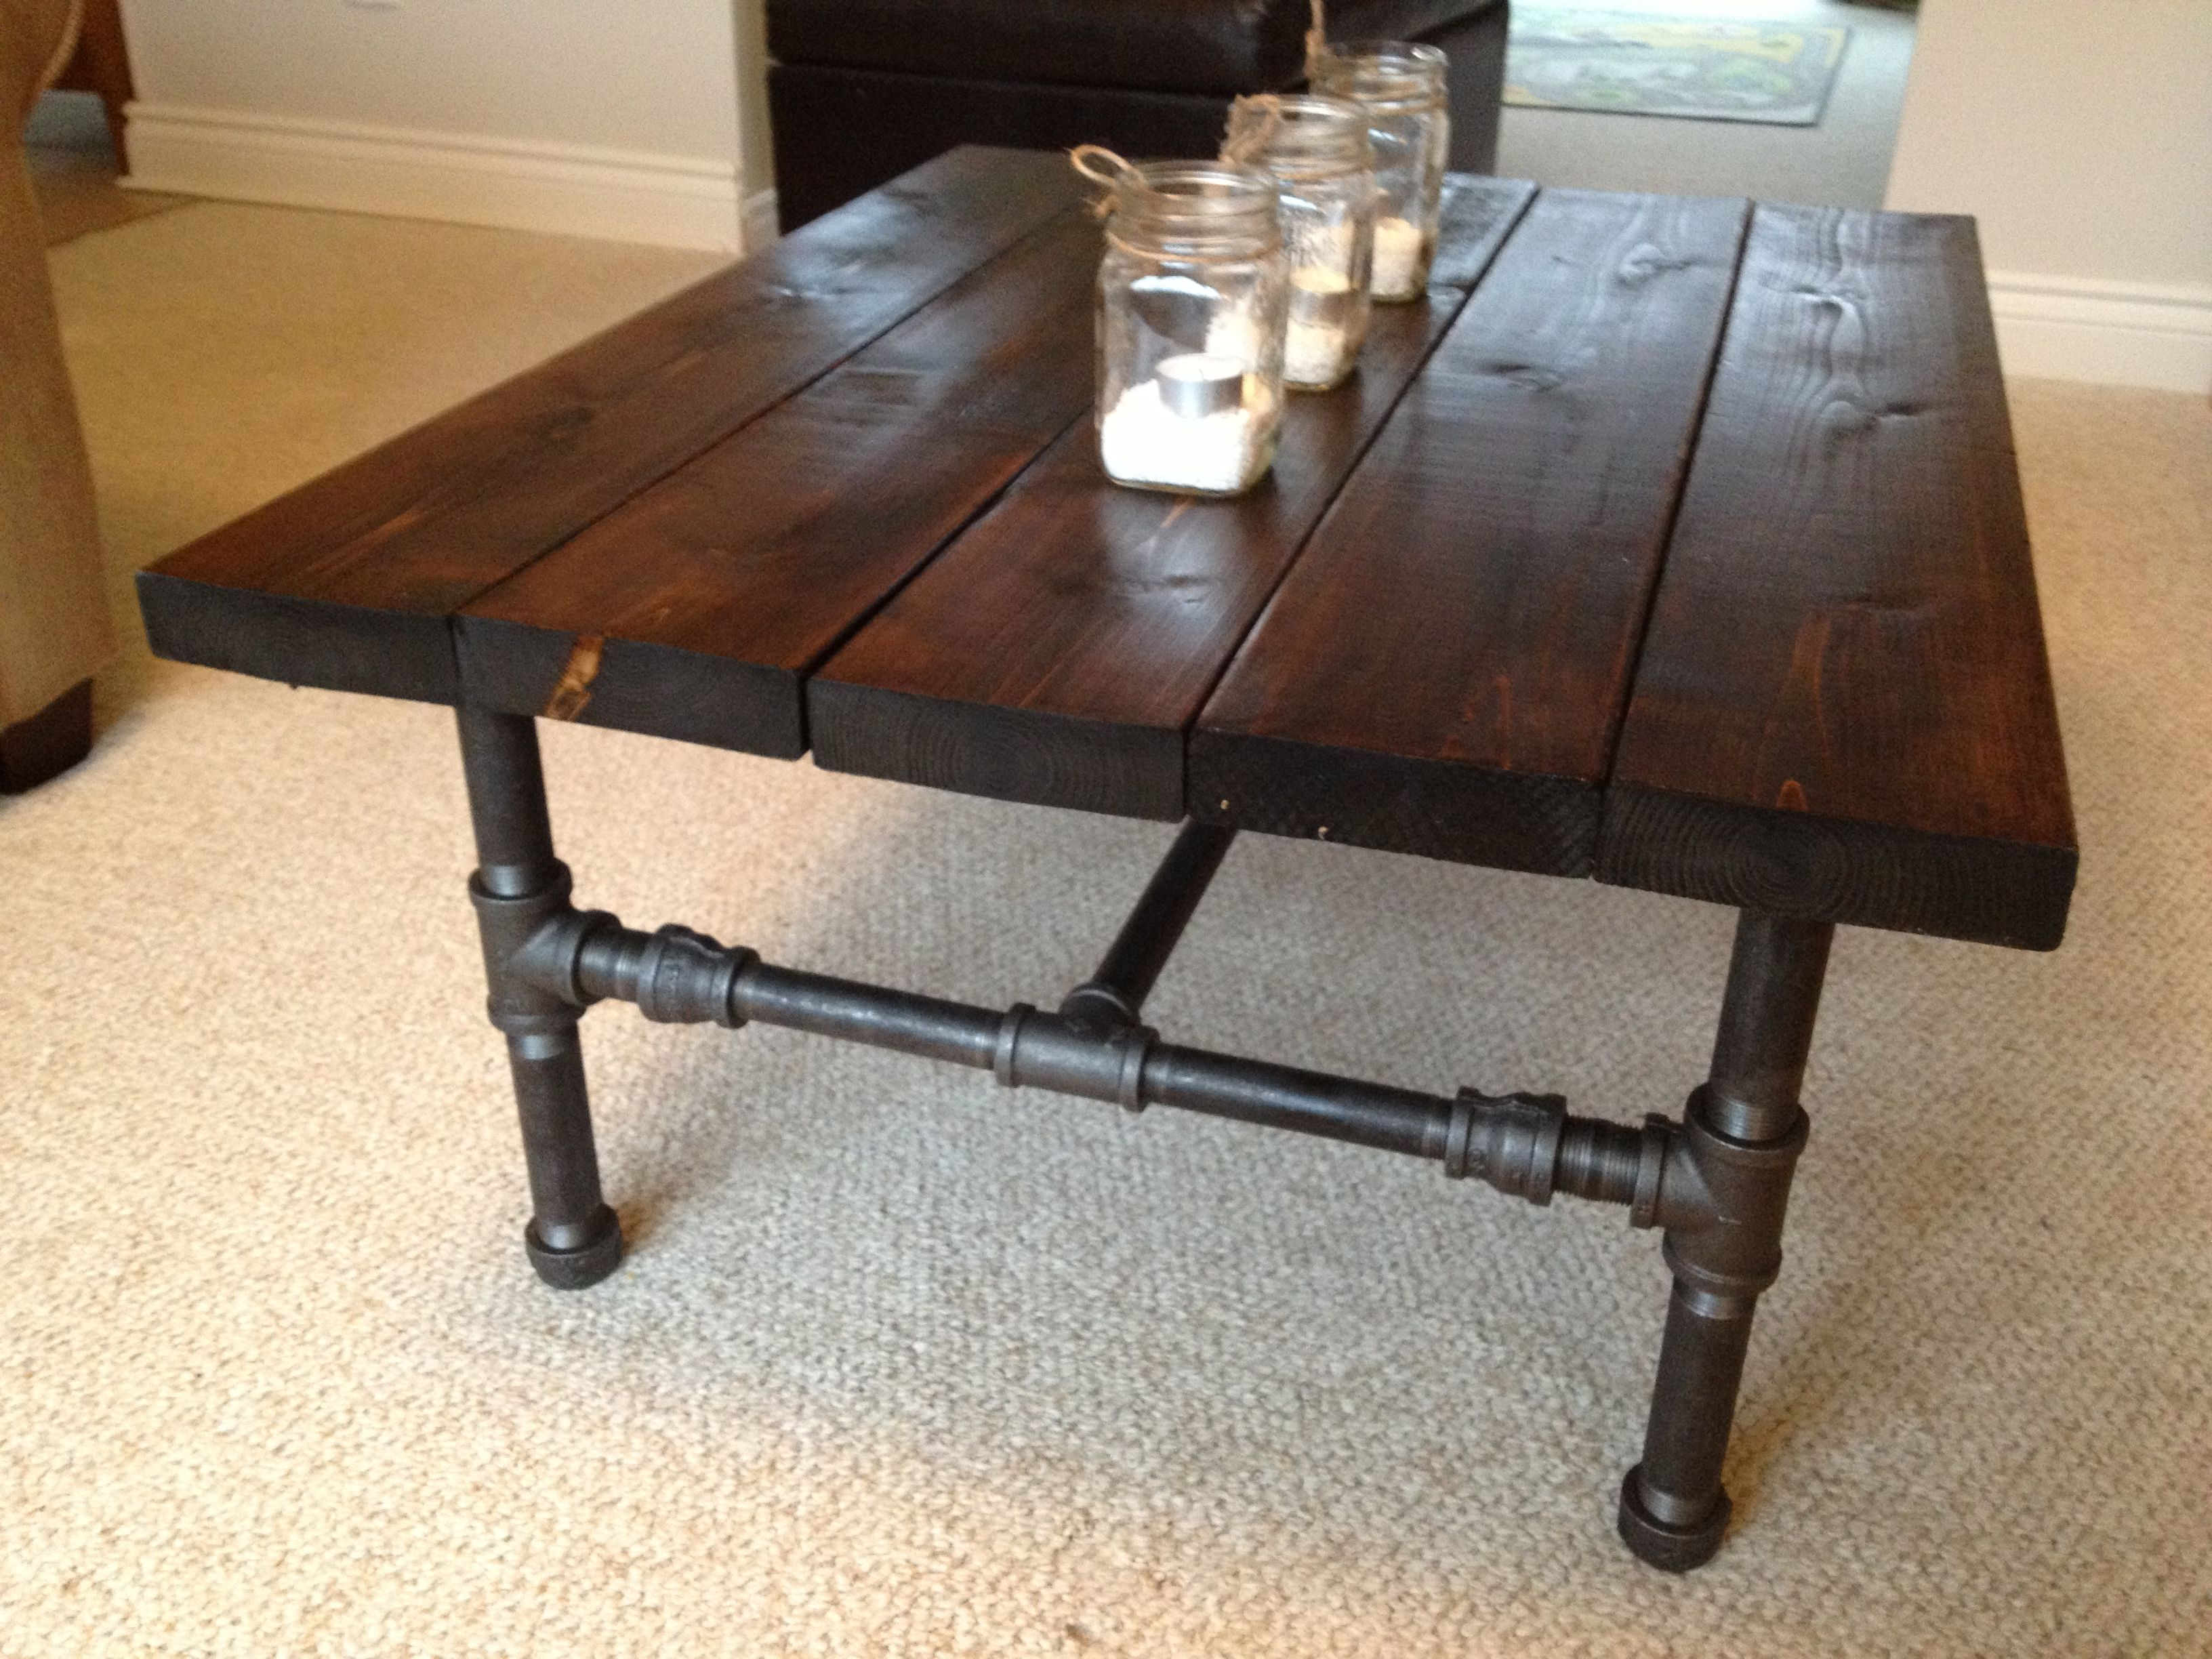 Best 25 Industrial style coffee table ideas on Pinterest